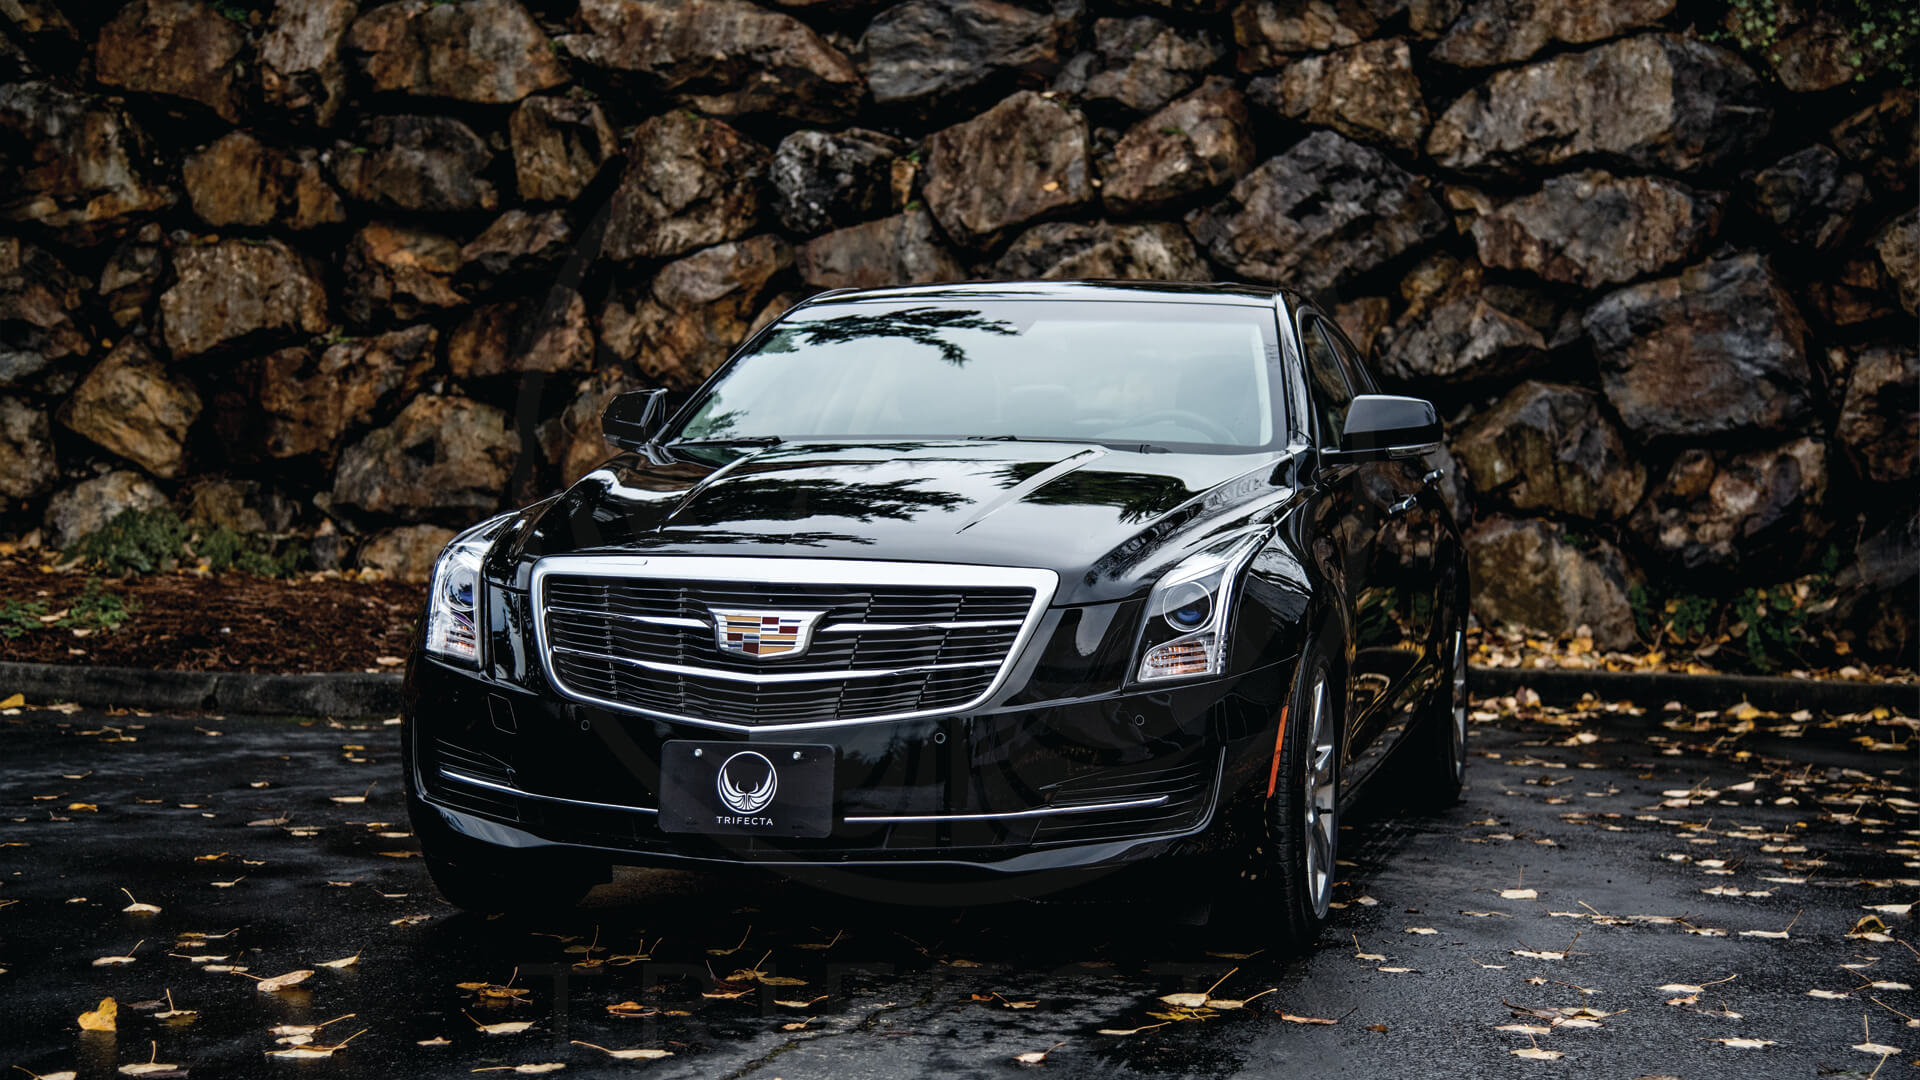 Product Review: 2013--2018 Cadillac ATS - 2.0L Turbo - Advantage